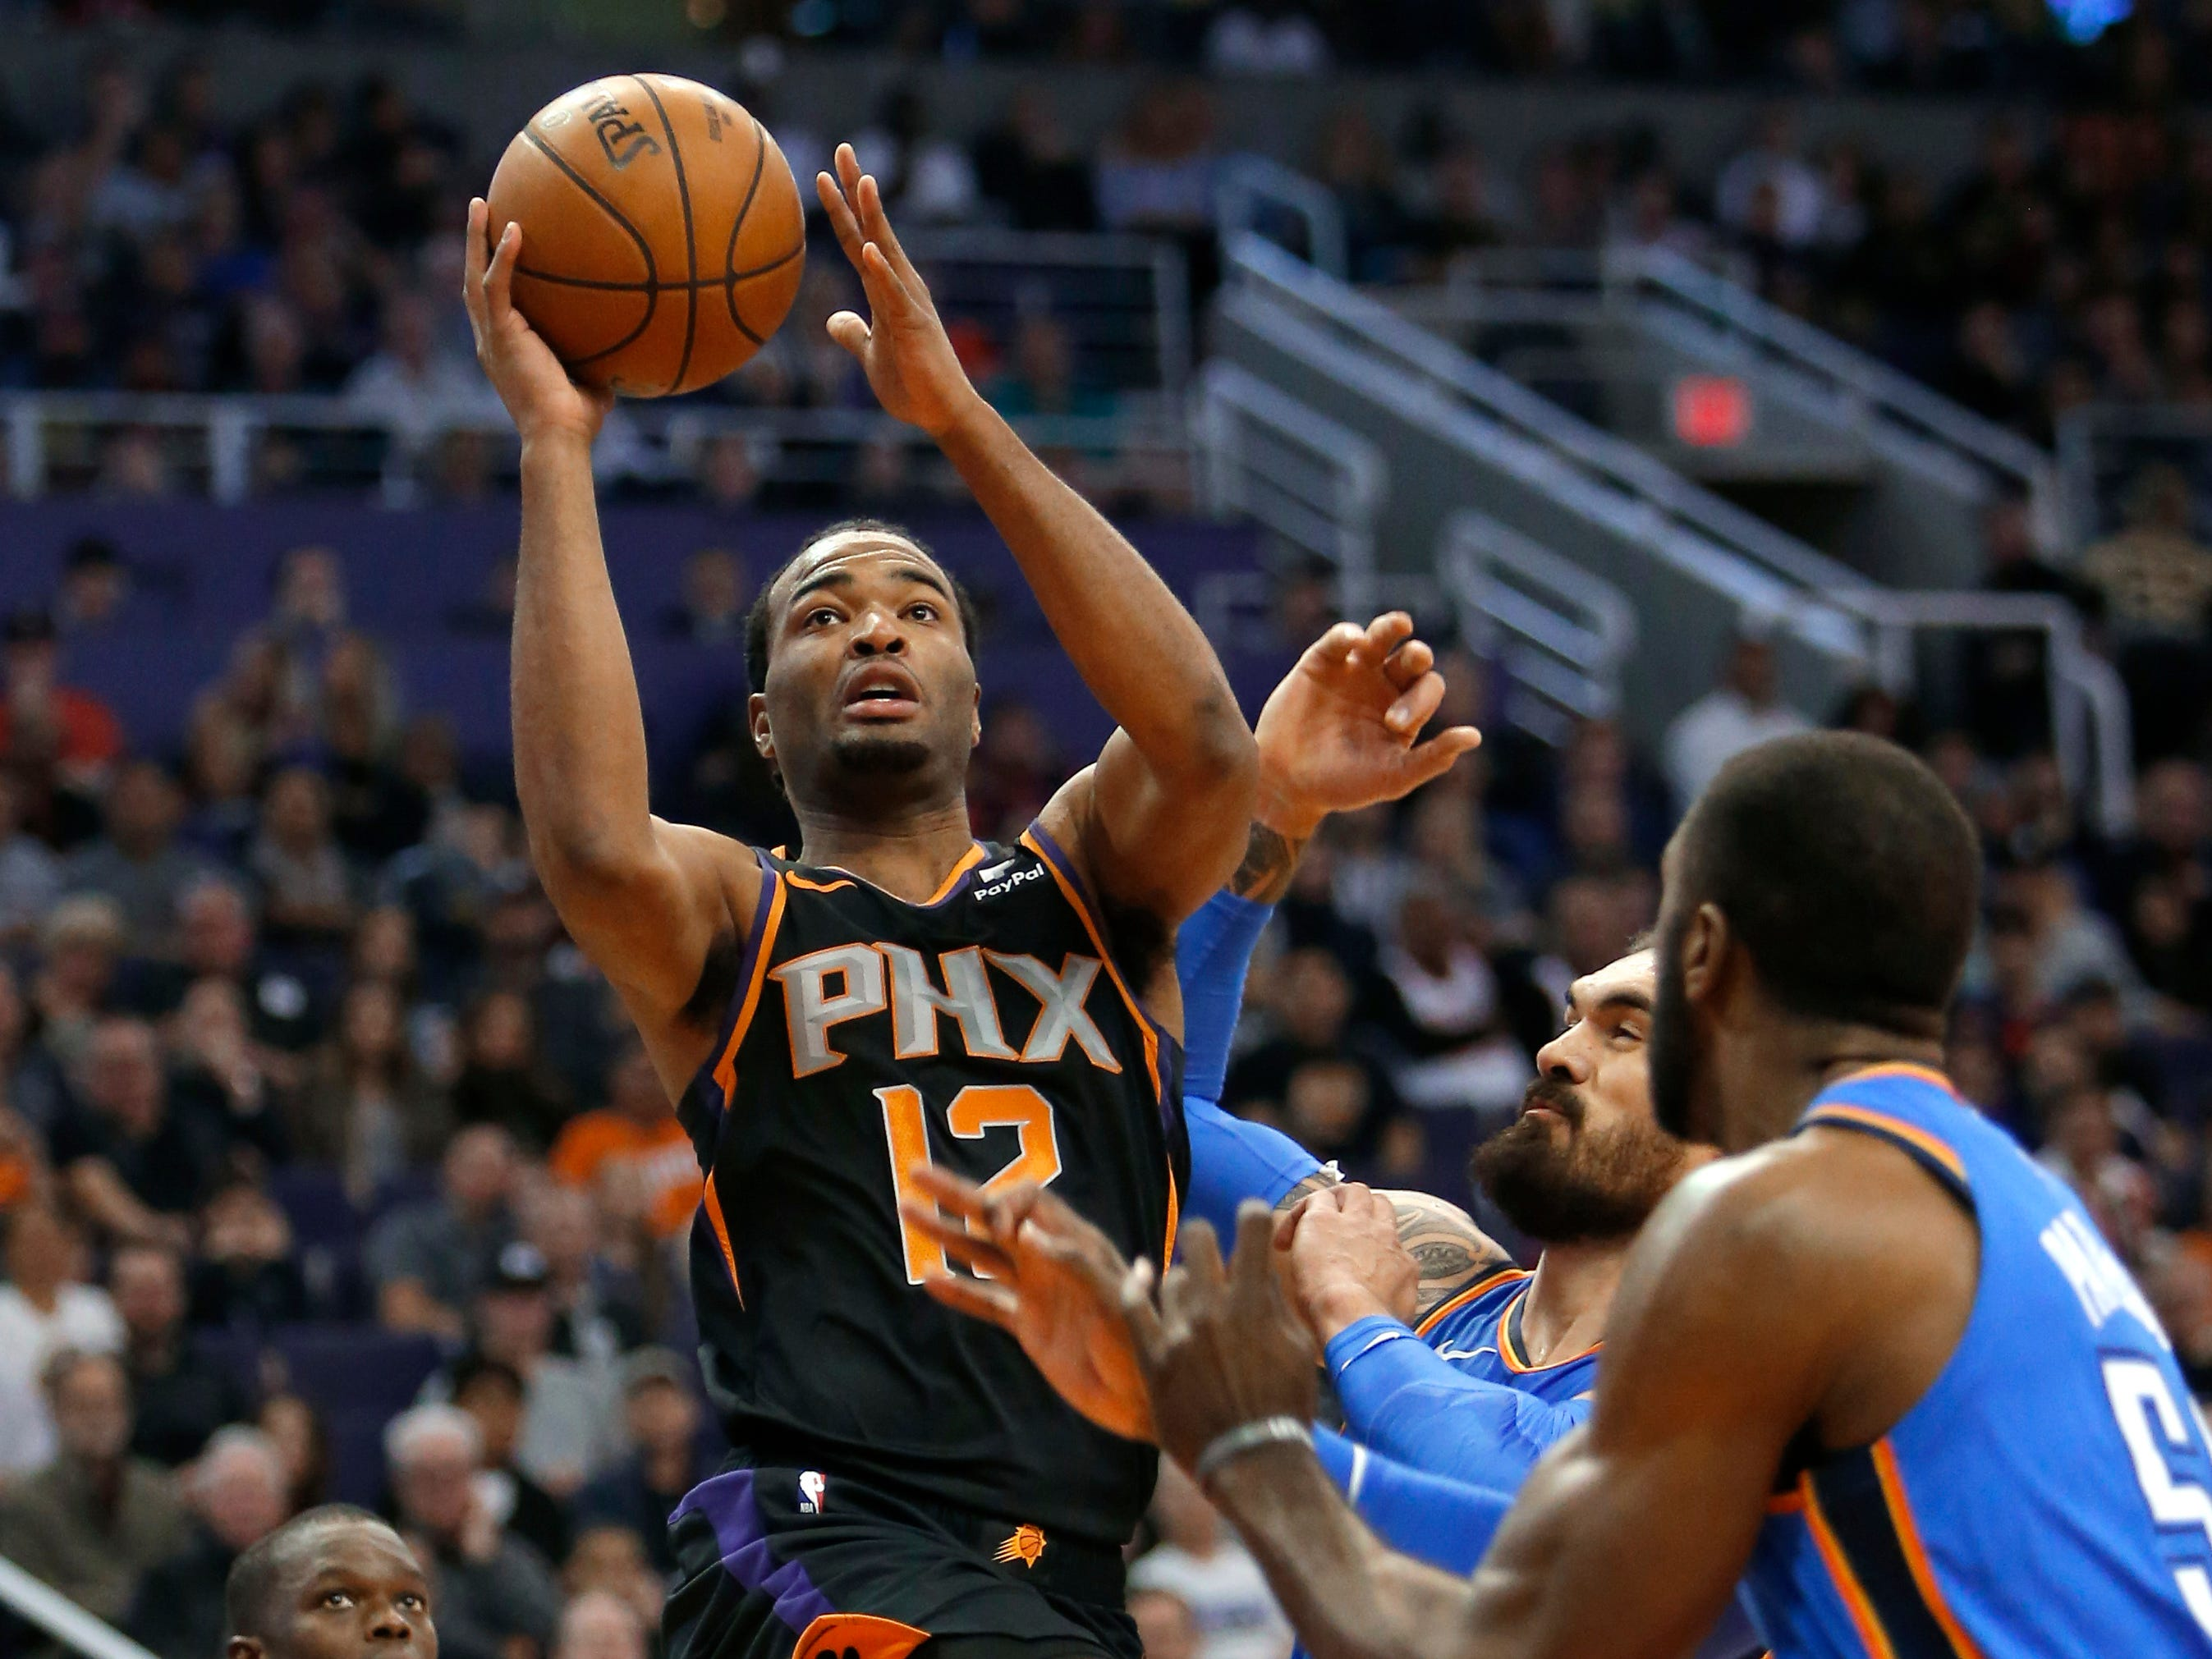 Phoenix Suns forward TJ Warren (12) drives between Oklahoma City Thunder's Steven Adams and Patrick Patterson (54) during the first half of an NBA basketball game Saturday, Nov. 17, 2018, in Phoenix. (AP Photo/Rick Scuteri)